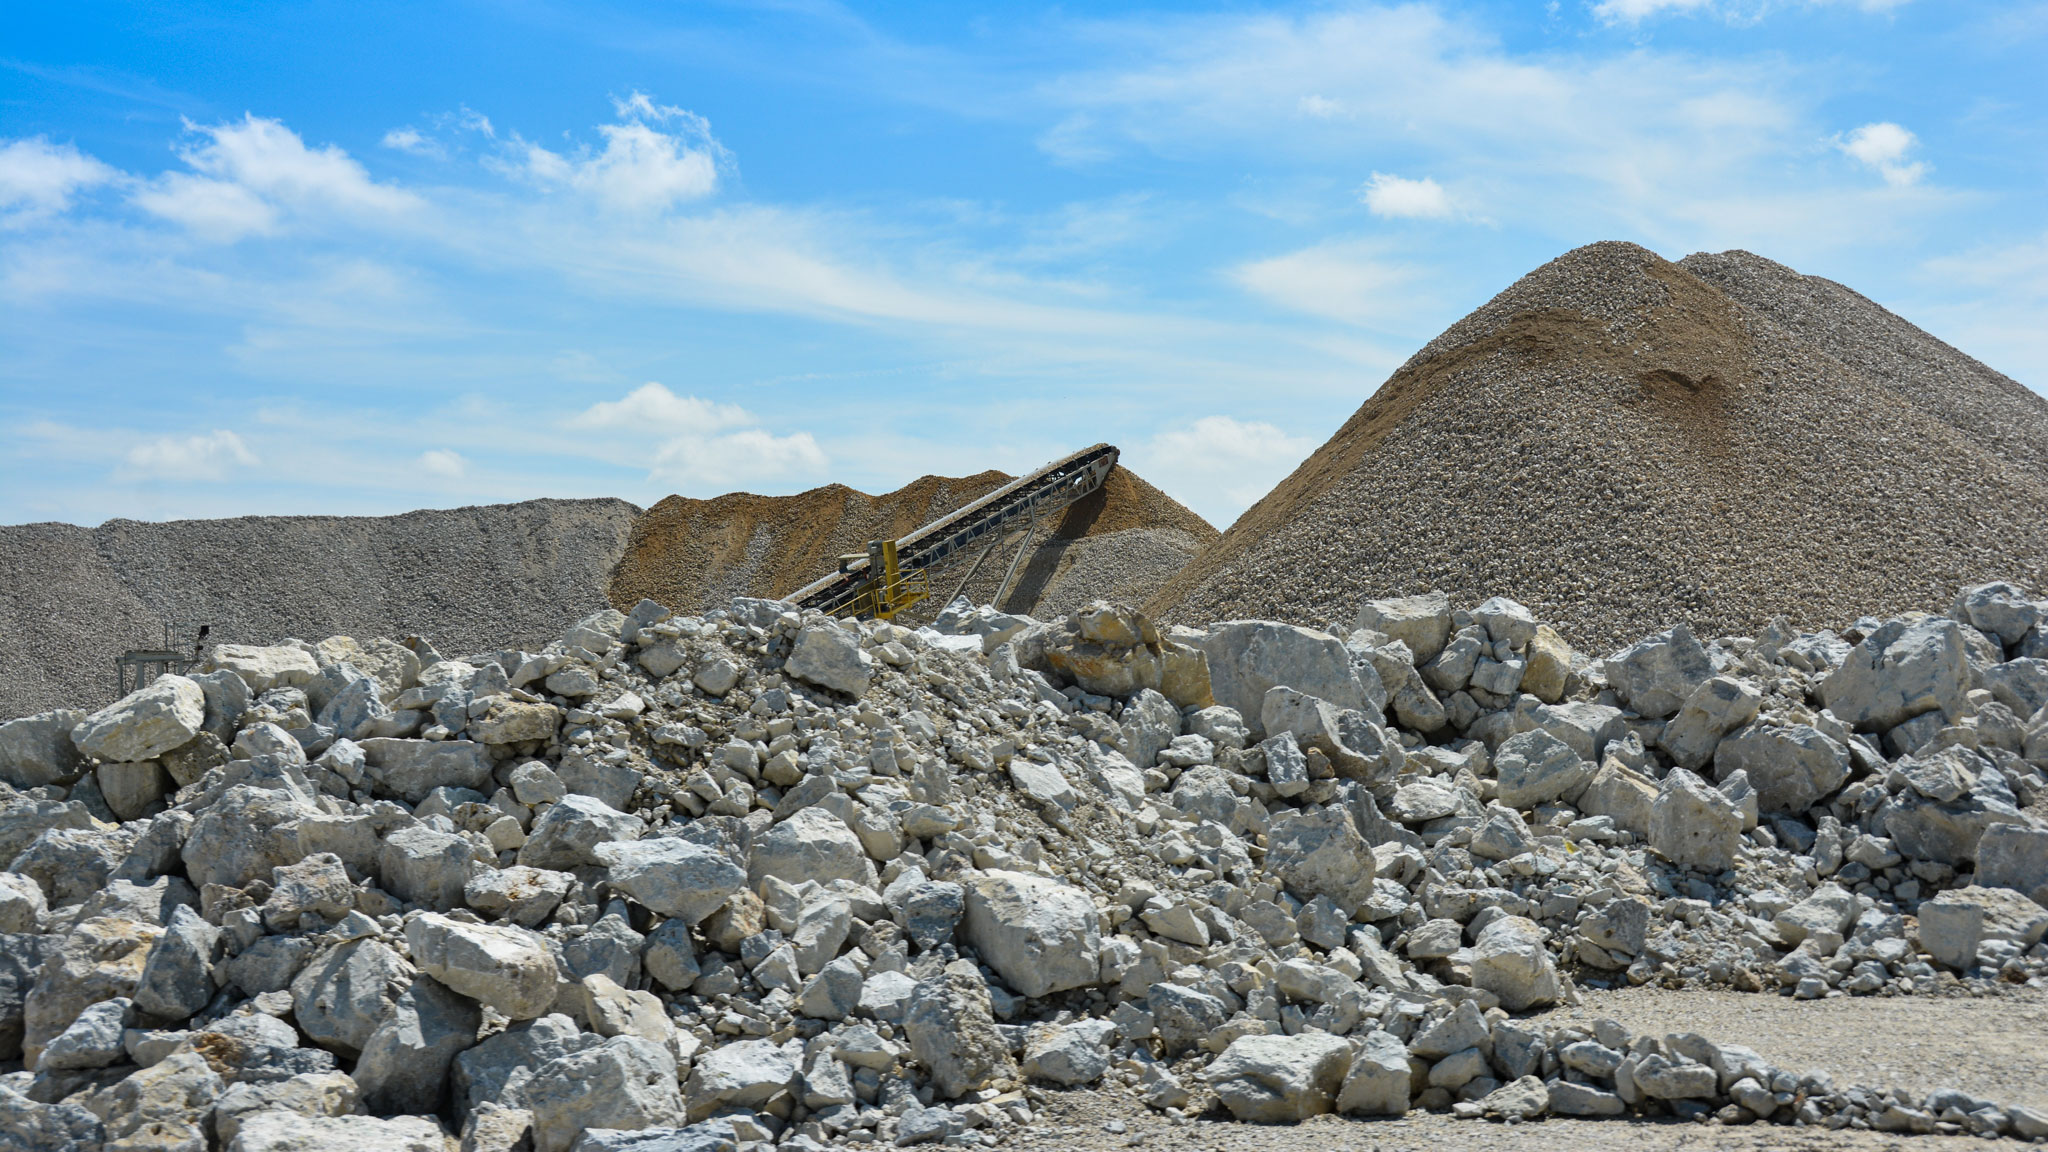 Delphi Quarry stockpile